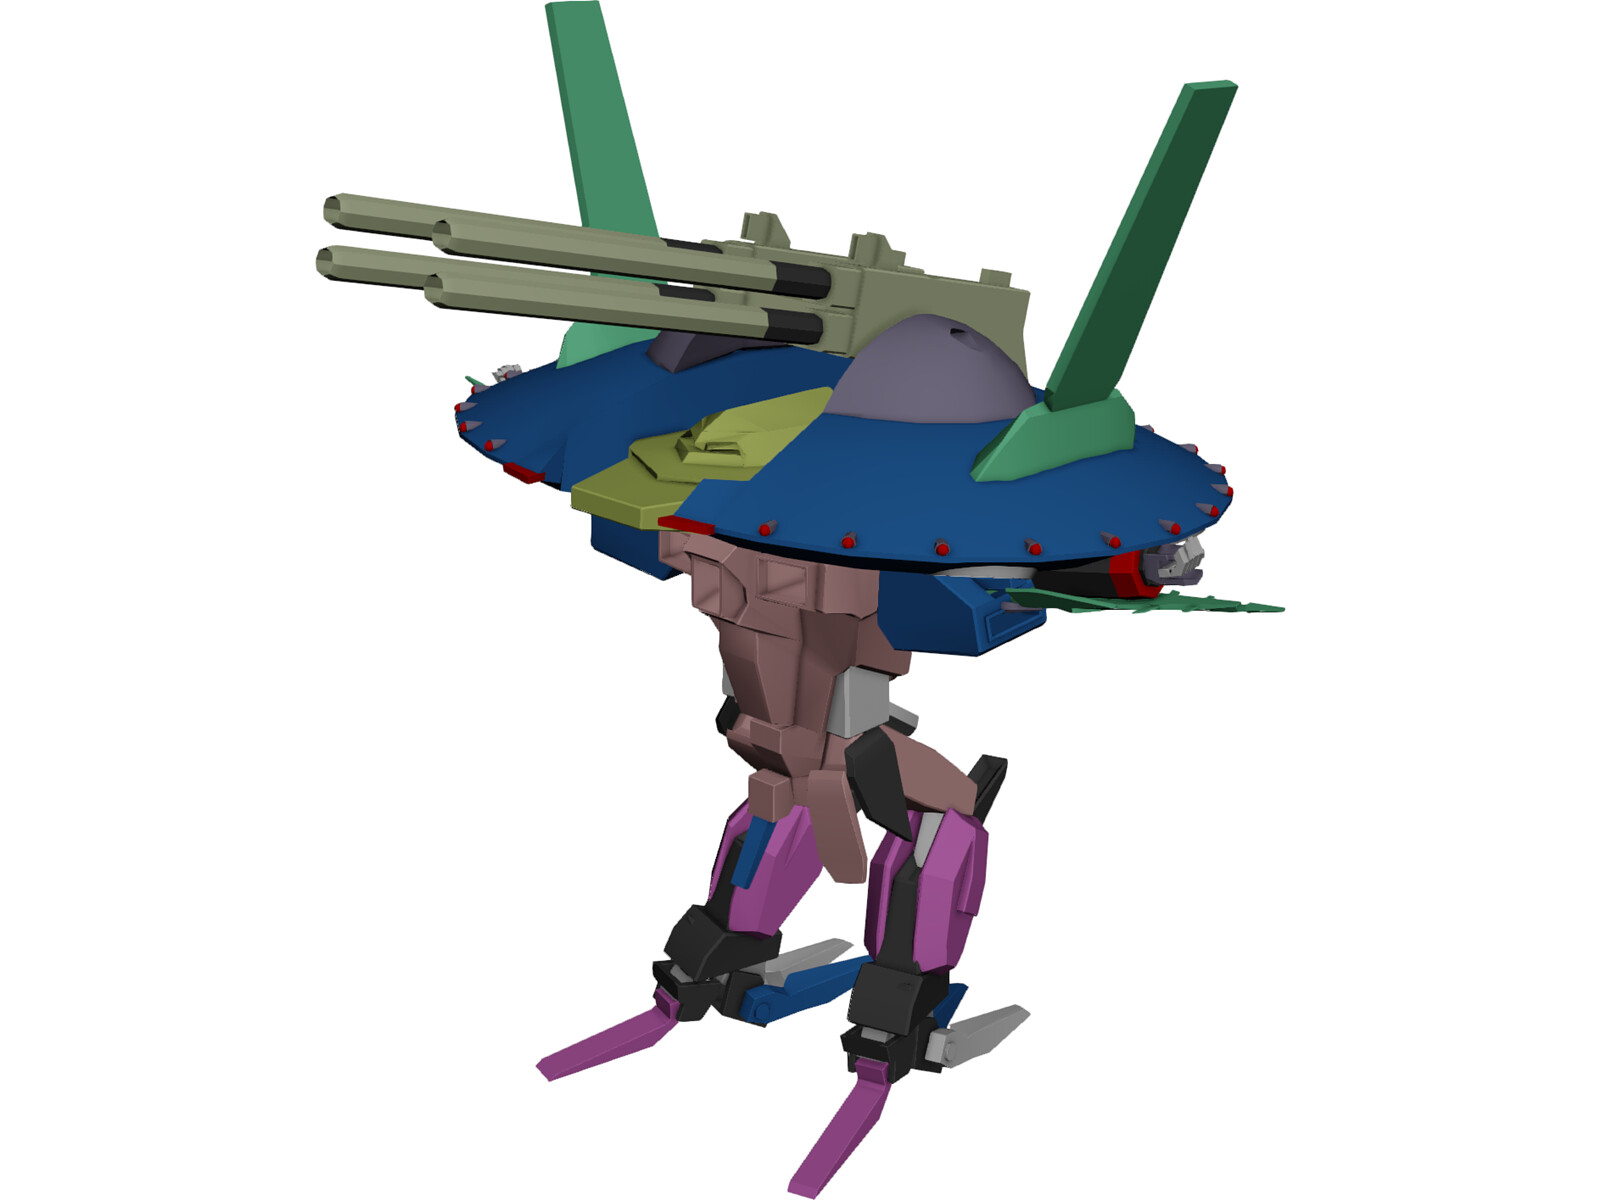 Armored Robot 3D Model